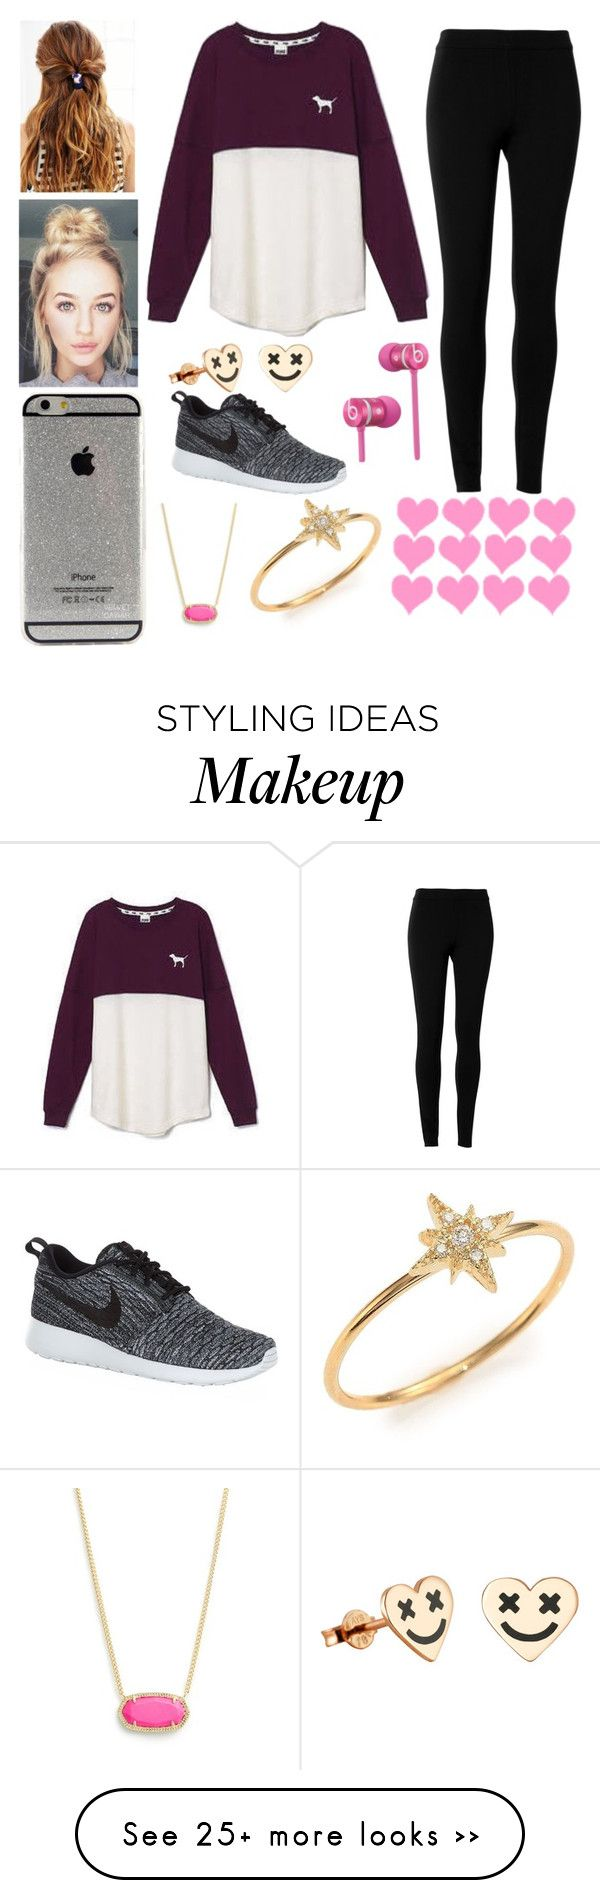 """Lazy Day Friday at School"" by evieleet on Polyvore featuring Max Studio, Victoria's Secret, NIKE, Beats by Dr. Dre, Kendra Scott and mizuki"